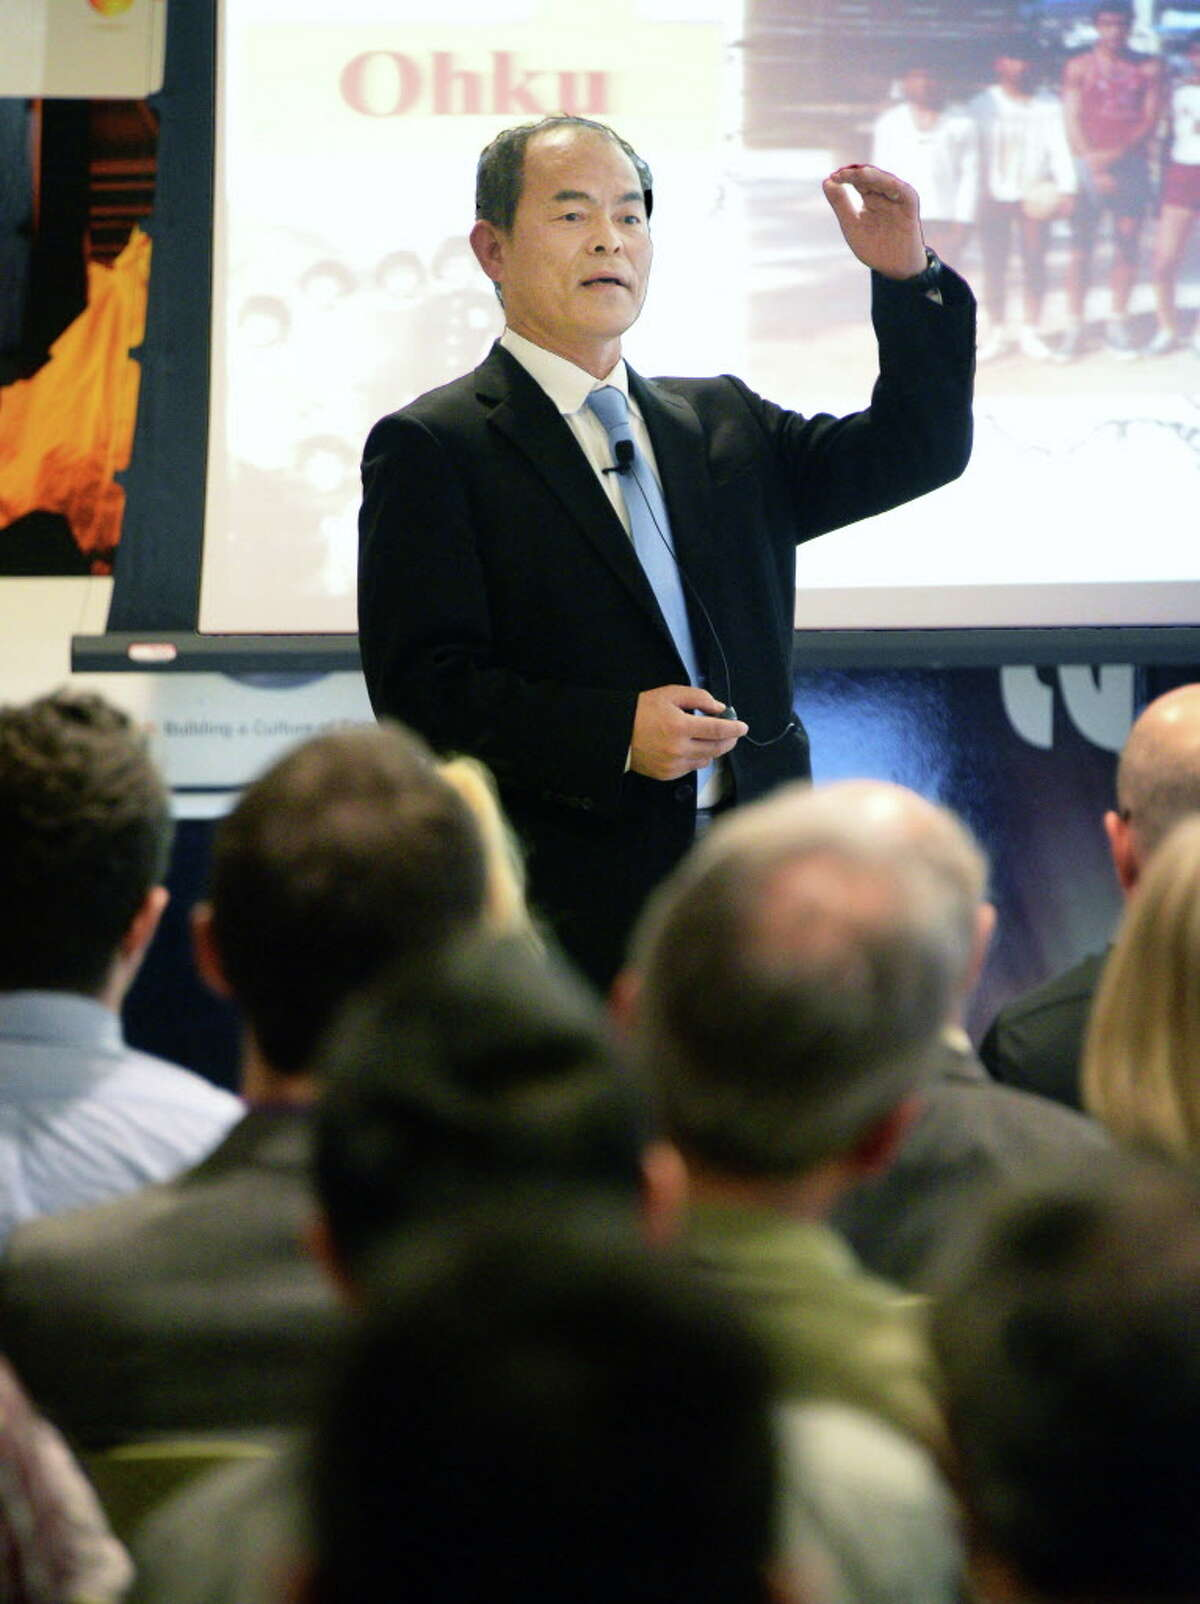 The father of blue LEDs and Nobel Laureate Dr. Shuji Nakamura speaks at Fab 8, GlobalFoundries' Distinguished Lecturers series Thursday April 14, 2016 in Malta, NY. Nakamura is a cofounder of LED maker Soraa, which is planning to operate a factory outside of Syracuse built by SUNY Polytechnic Institute. (John Carl D'Annibale / Times Union)